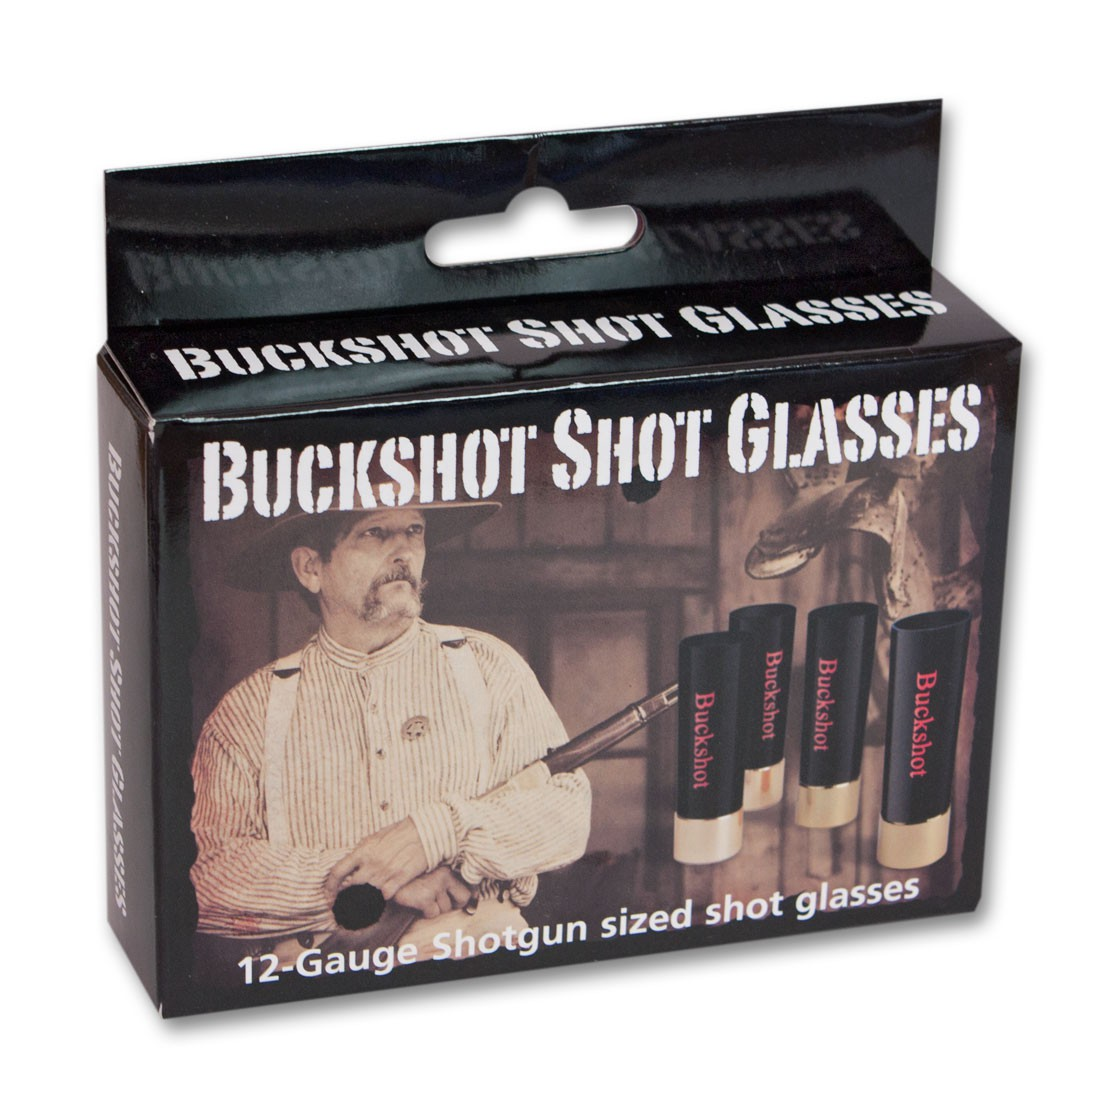 Buckshot Shotglasses 4-Pack